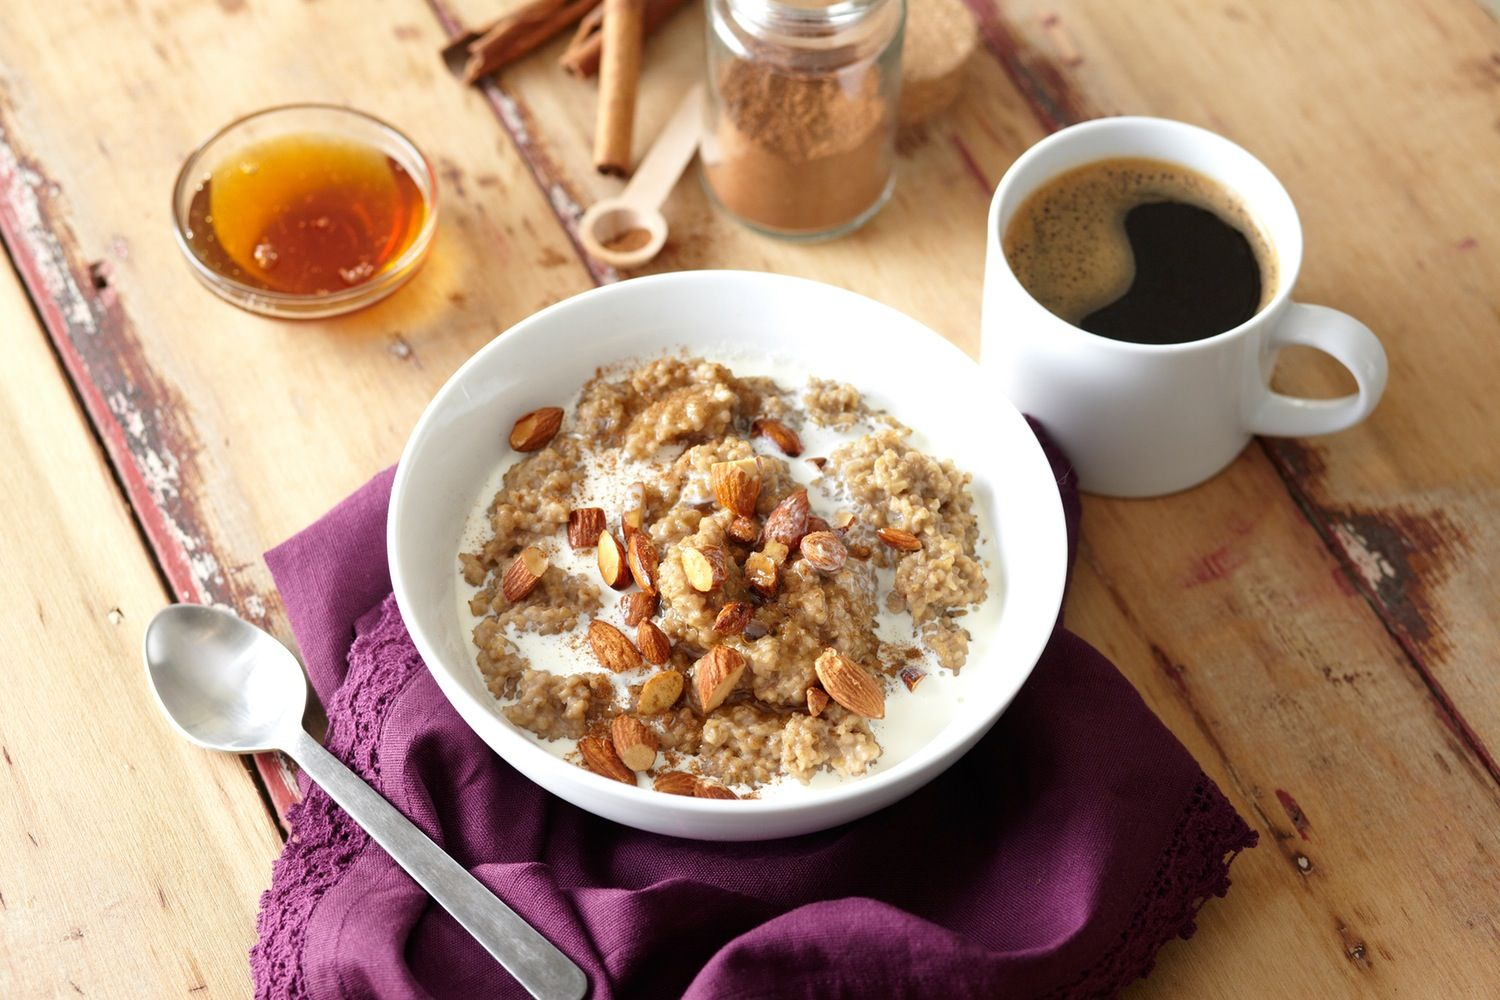 Mornings are about efficiency. How can you quickly get out the door while still managing a healthy breakfast and a caffeine kick? Here's your answer: Cook your oatmeal in tea. You're not only getting a buzz from your breakfast bowl, but it's also creamy, spicy, and delicious!